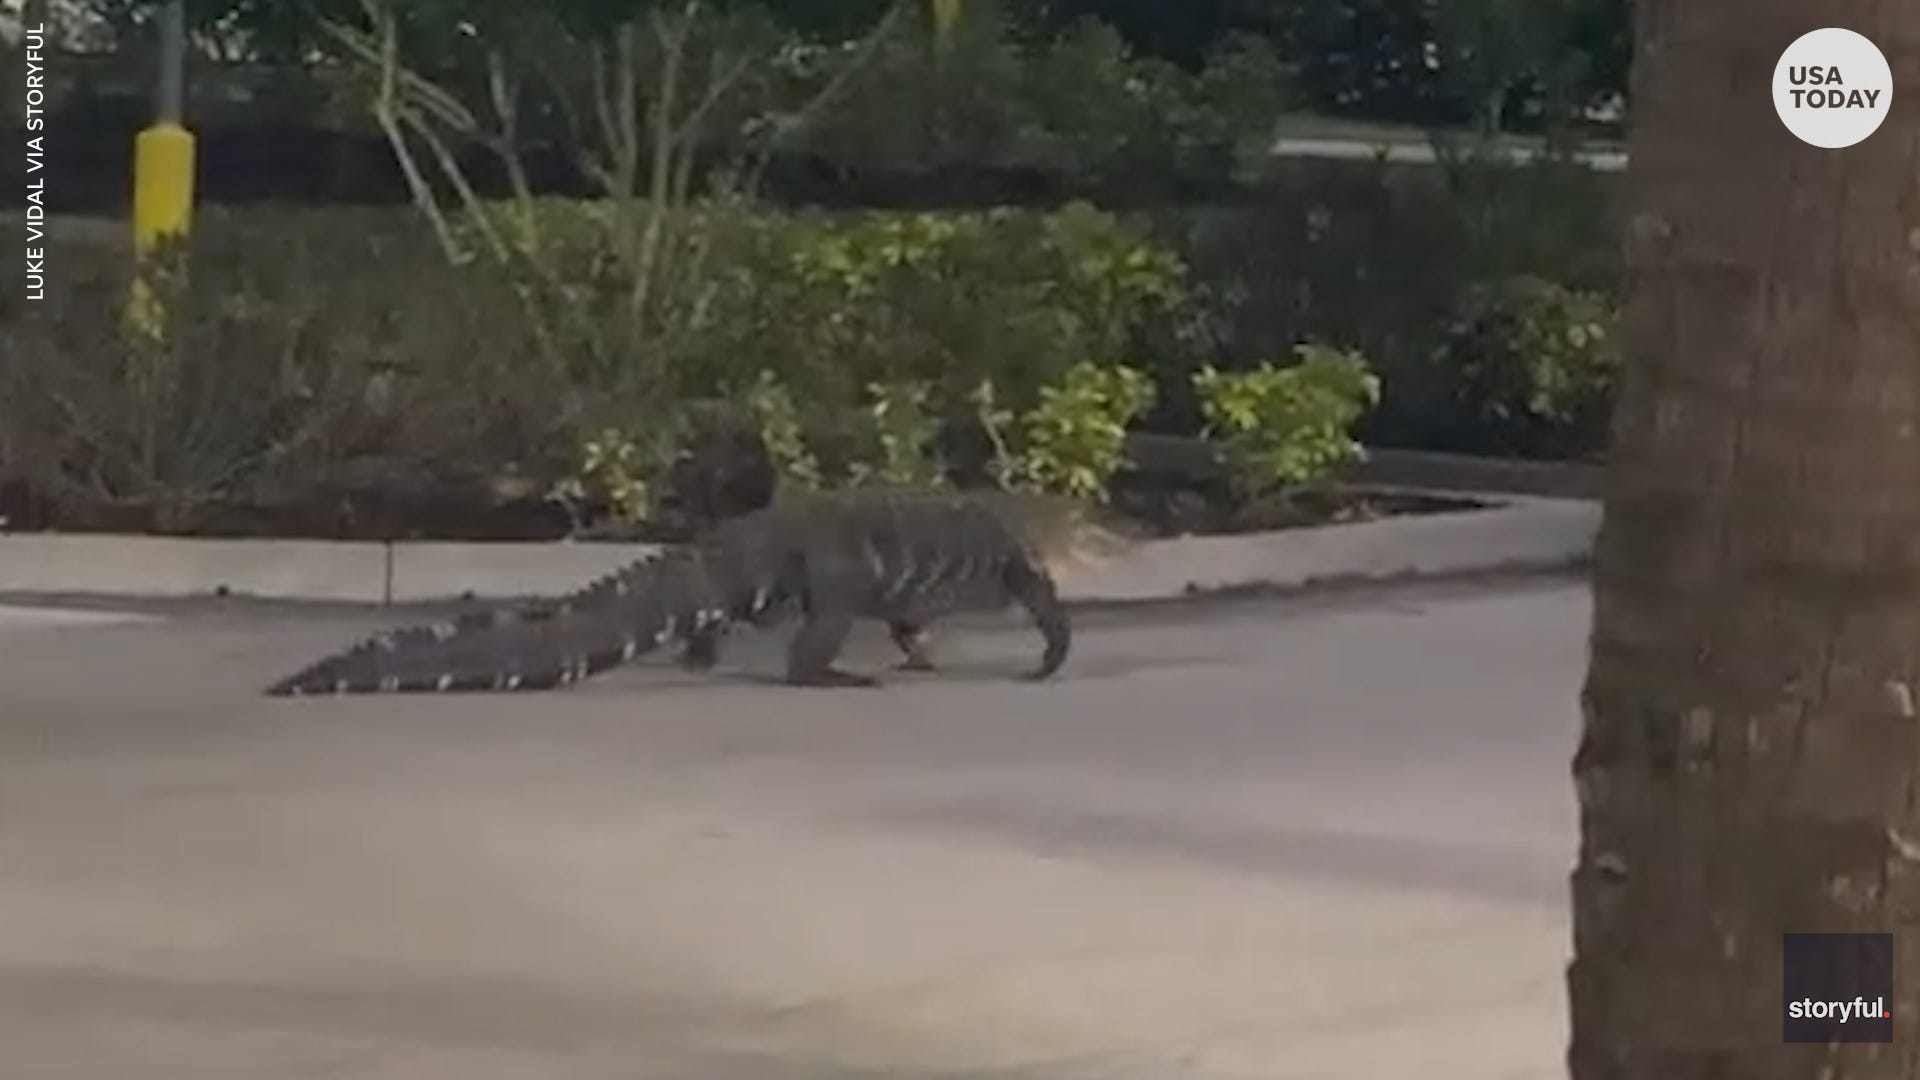 This giant alligator casually strolled through supermarket parking lot in Florida